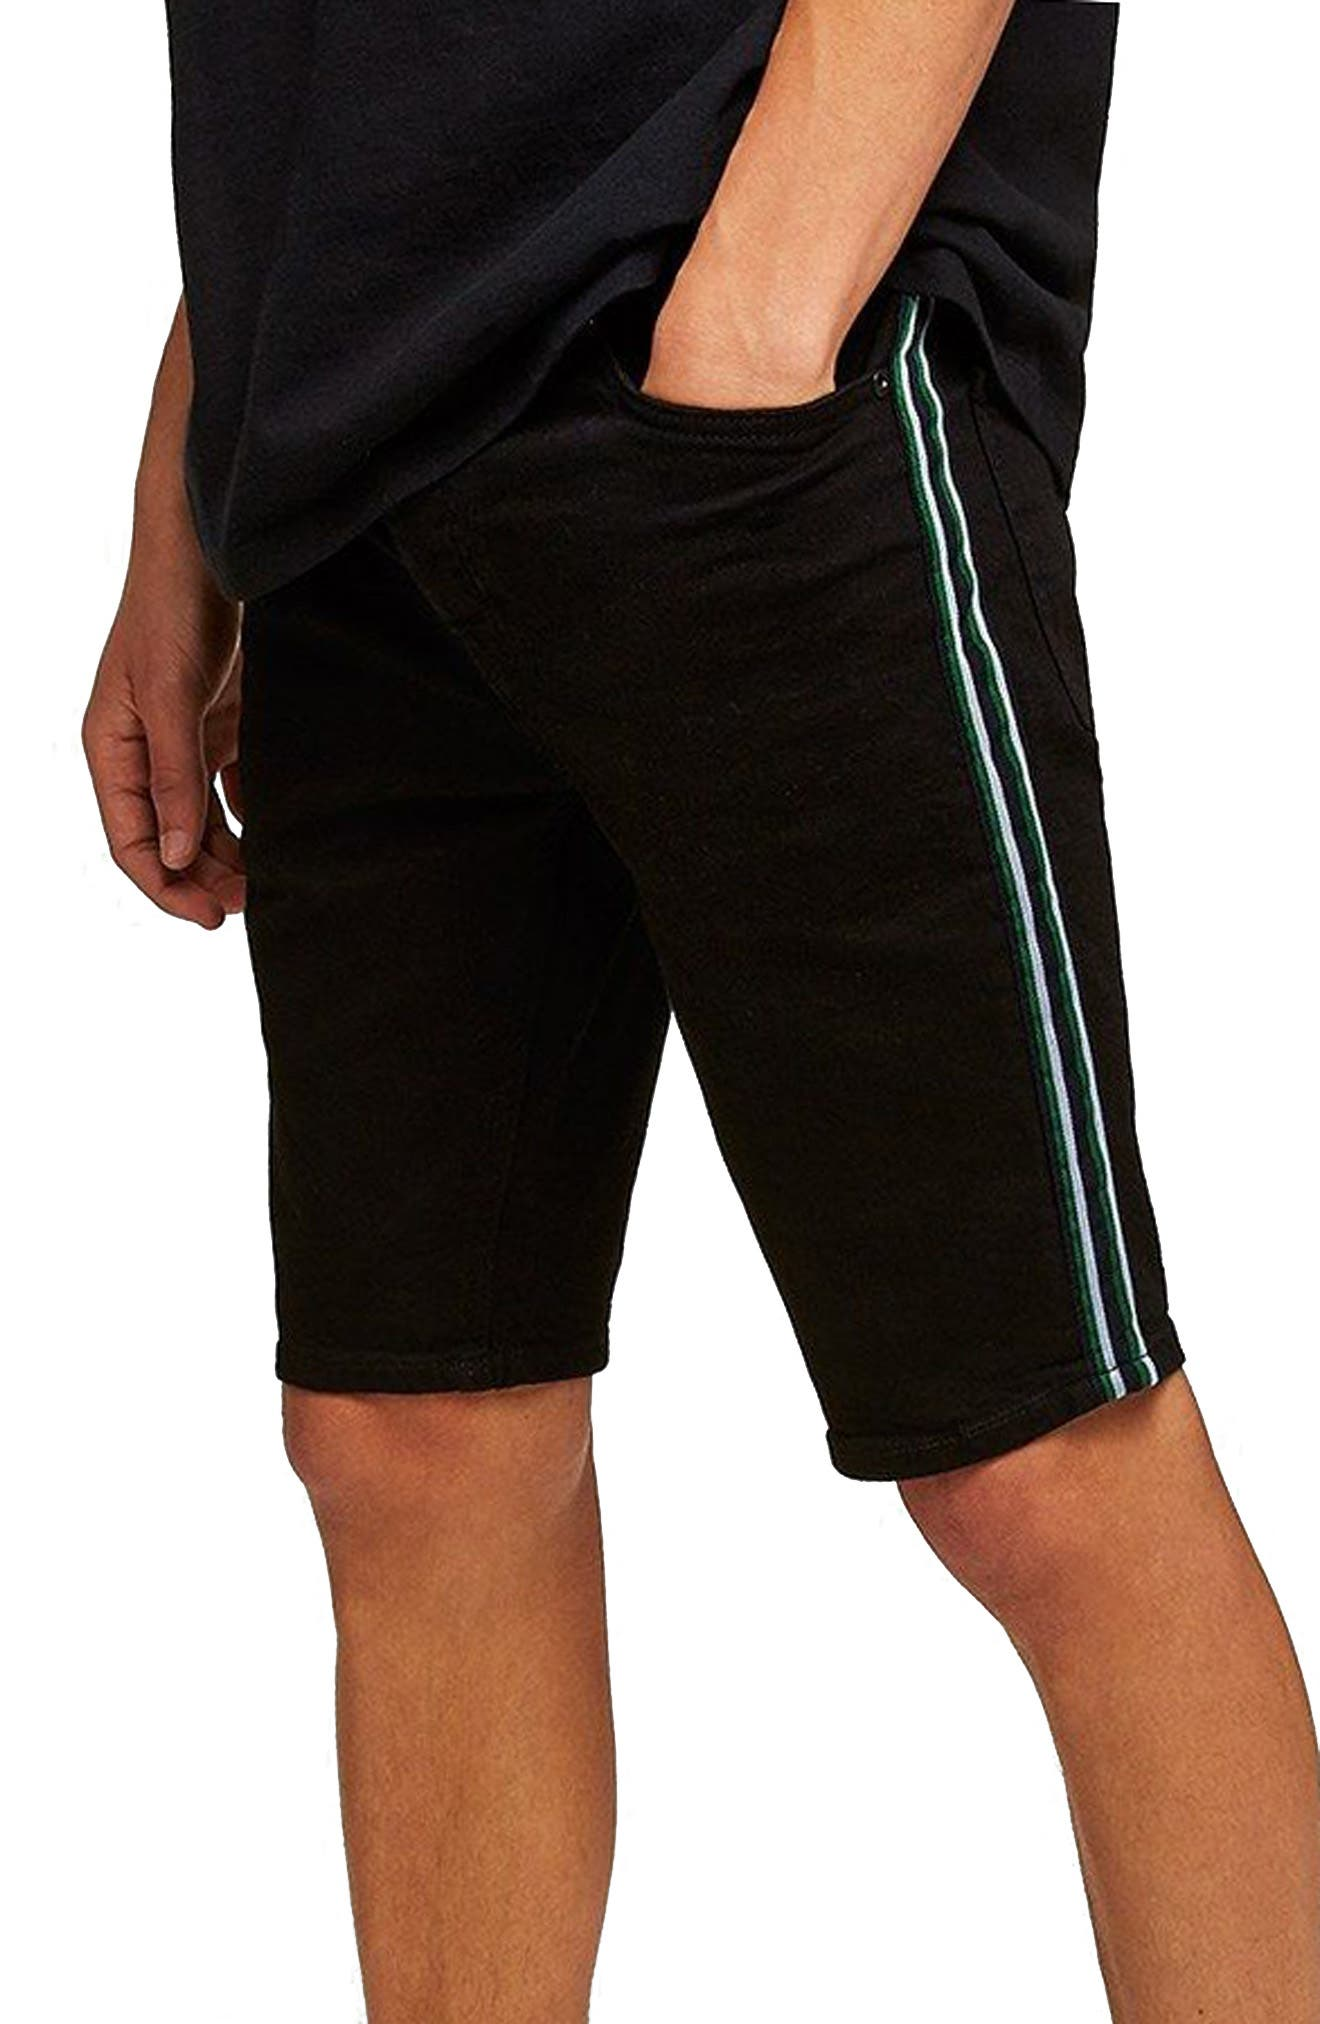 Tape Stretch Skinny Fit Denim Shorts,                         Main,                         color, Black